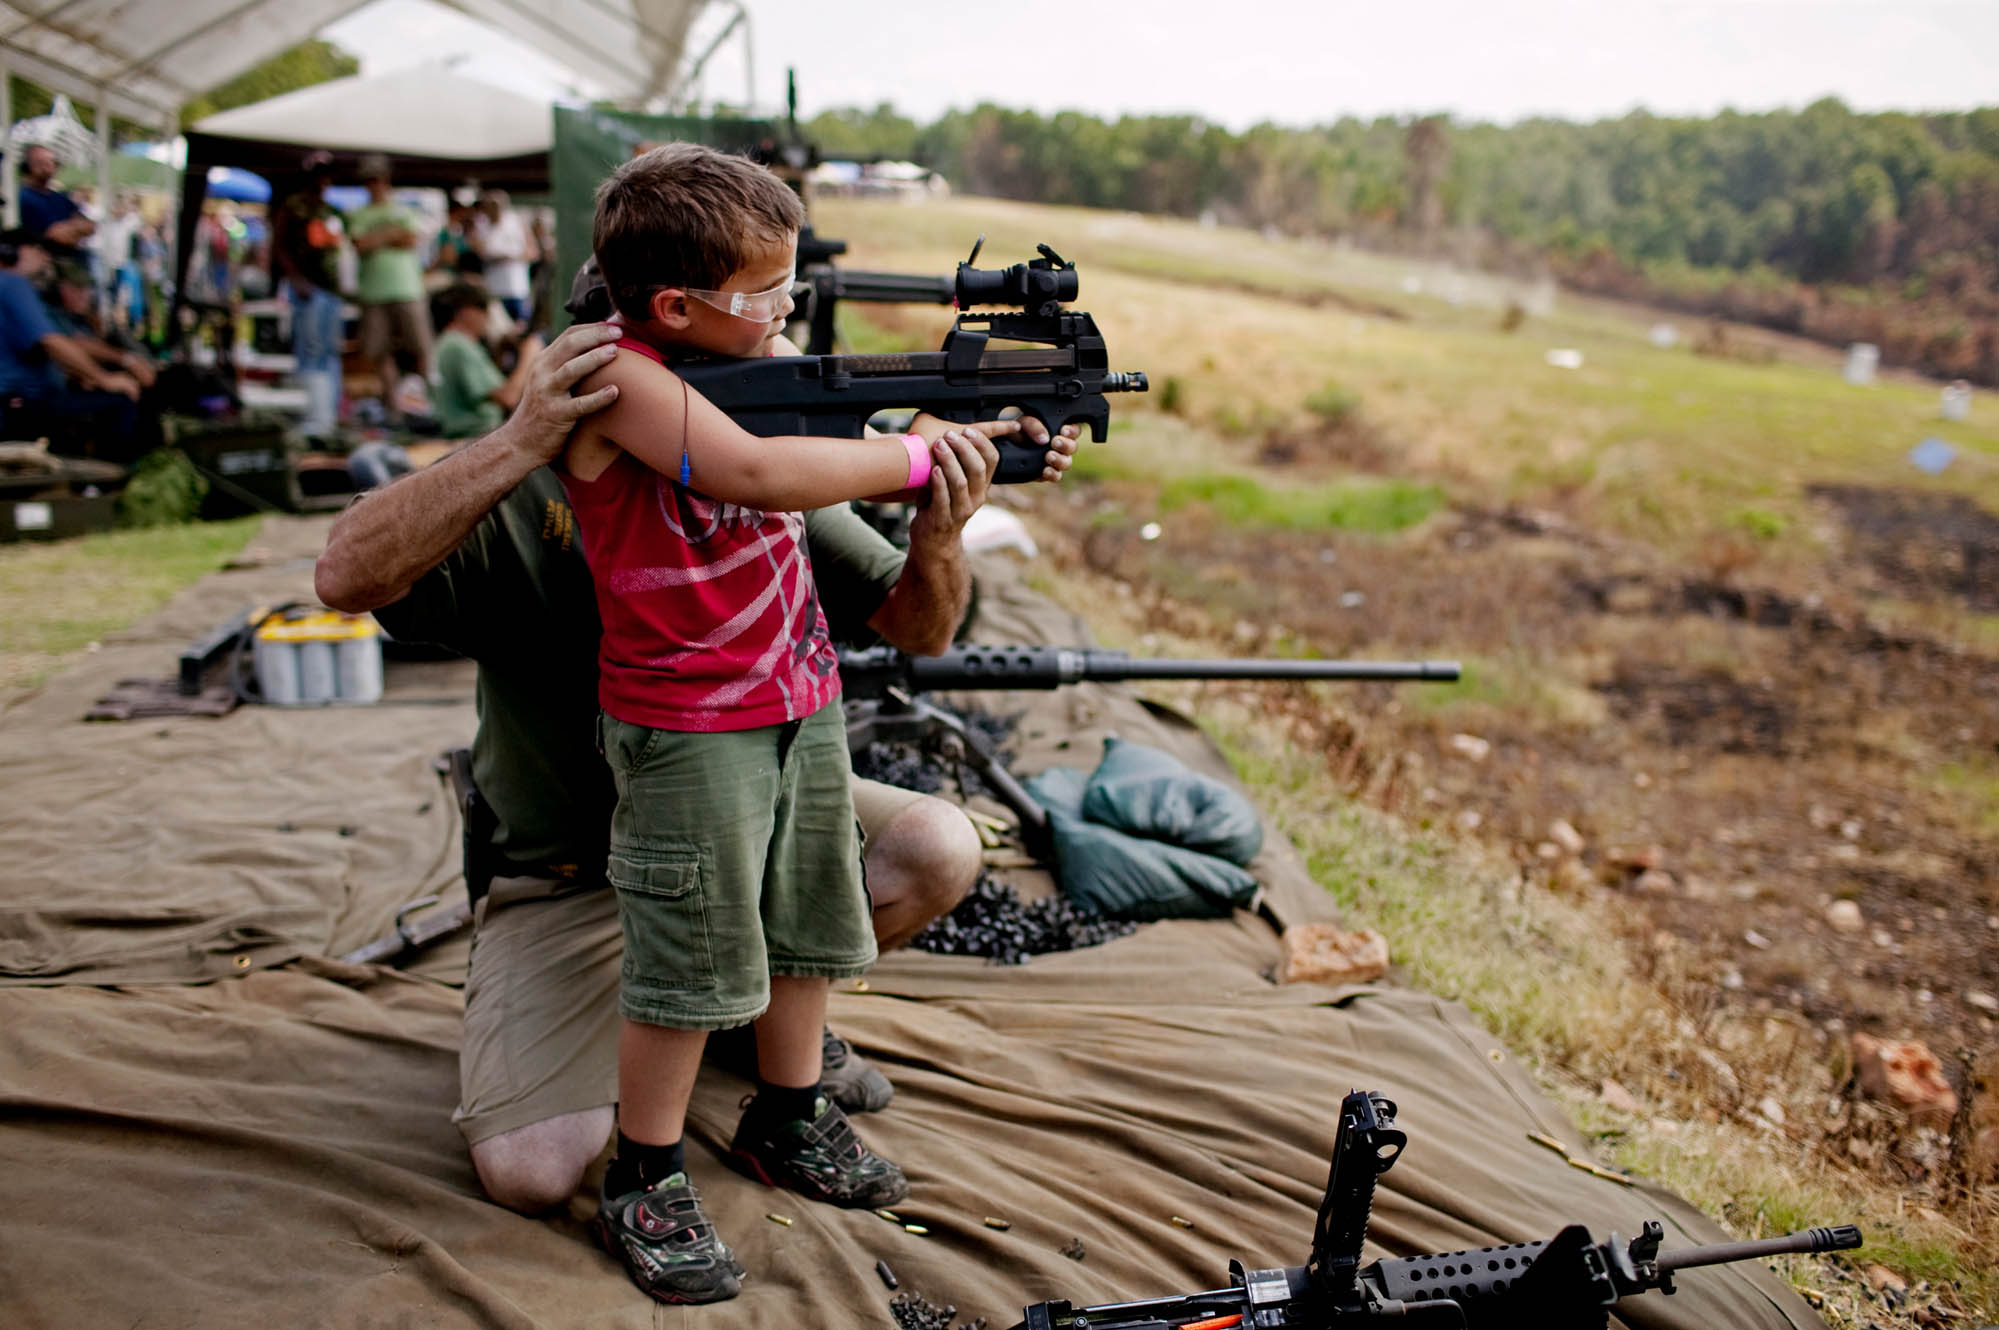 A young boy is supported as he fires a fully automatic machine gun. Safety regulations at OFASTS are extremely tight with all shooters carefully monitored by exhibitors.